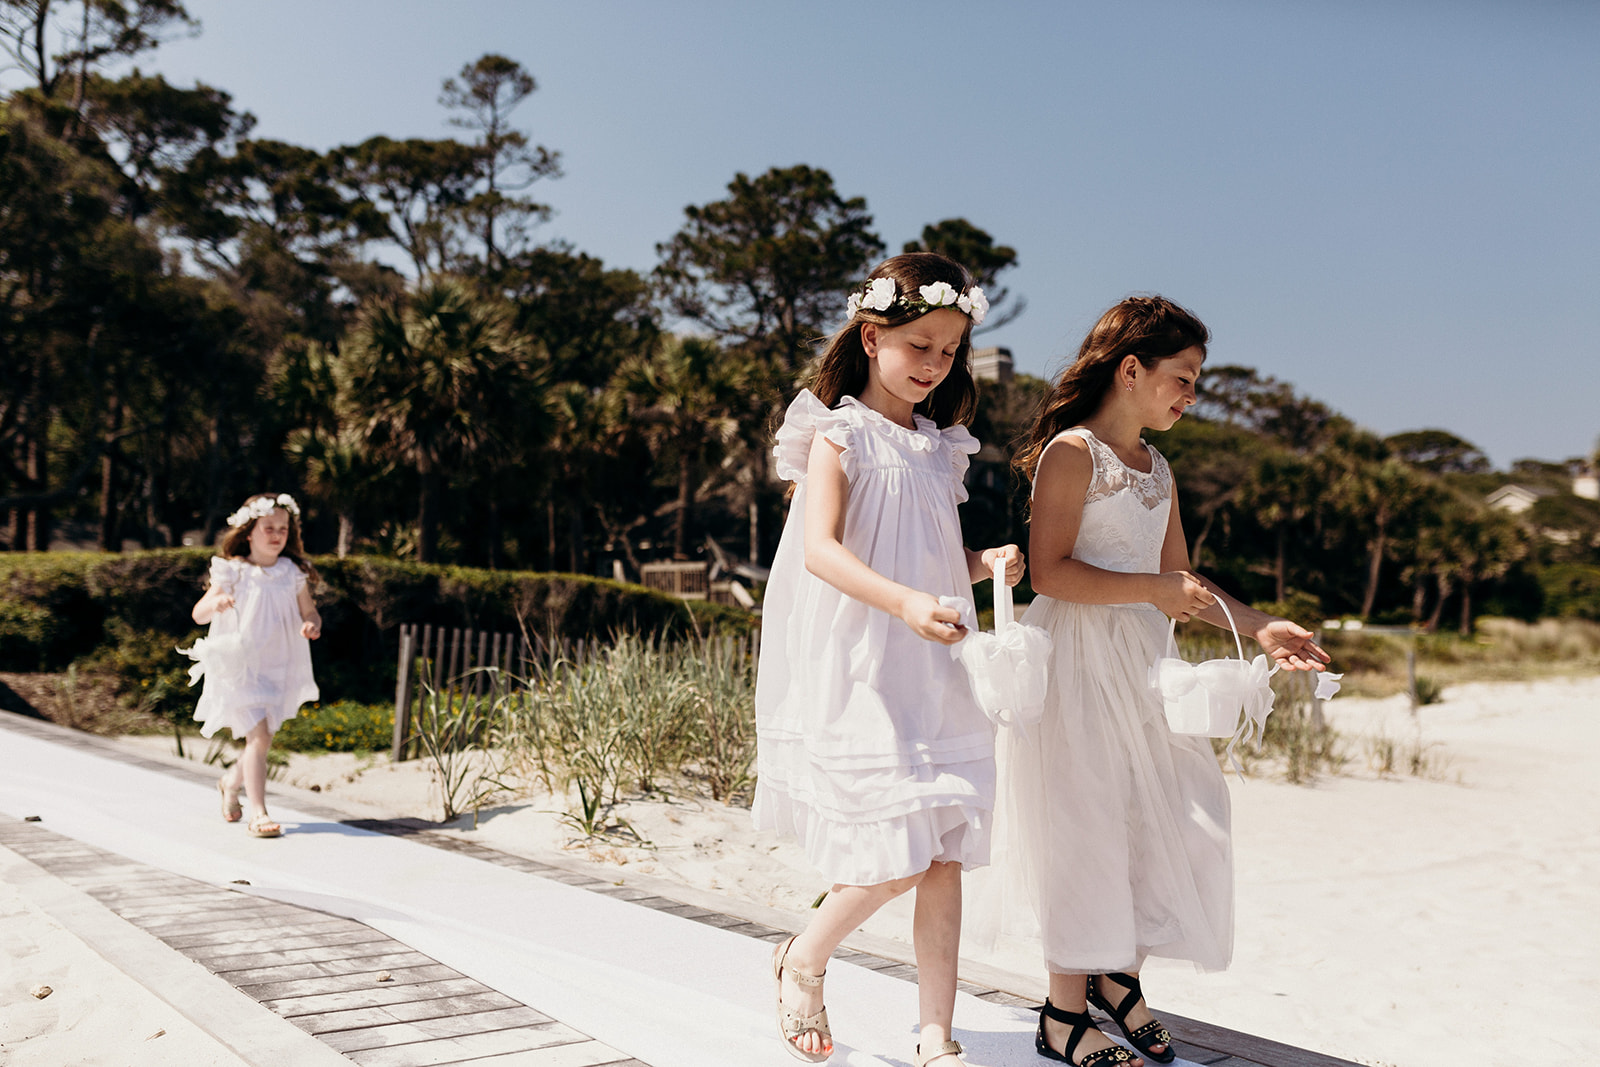 Hilton Head Island Micro Wedding - Addison + Morgan 181